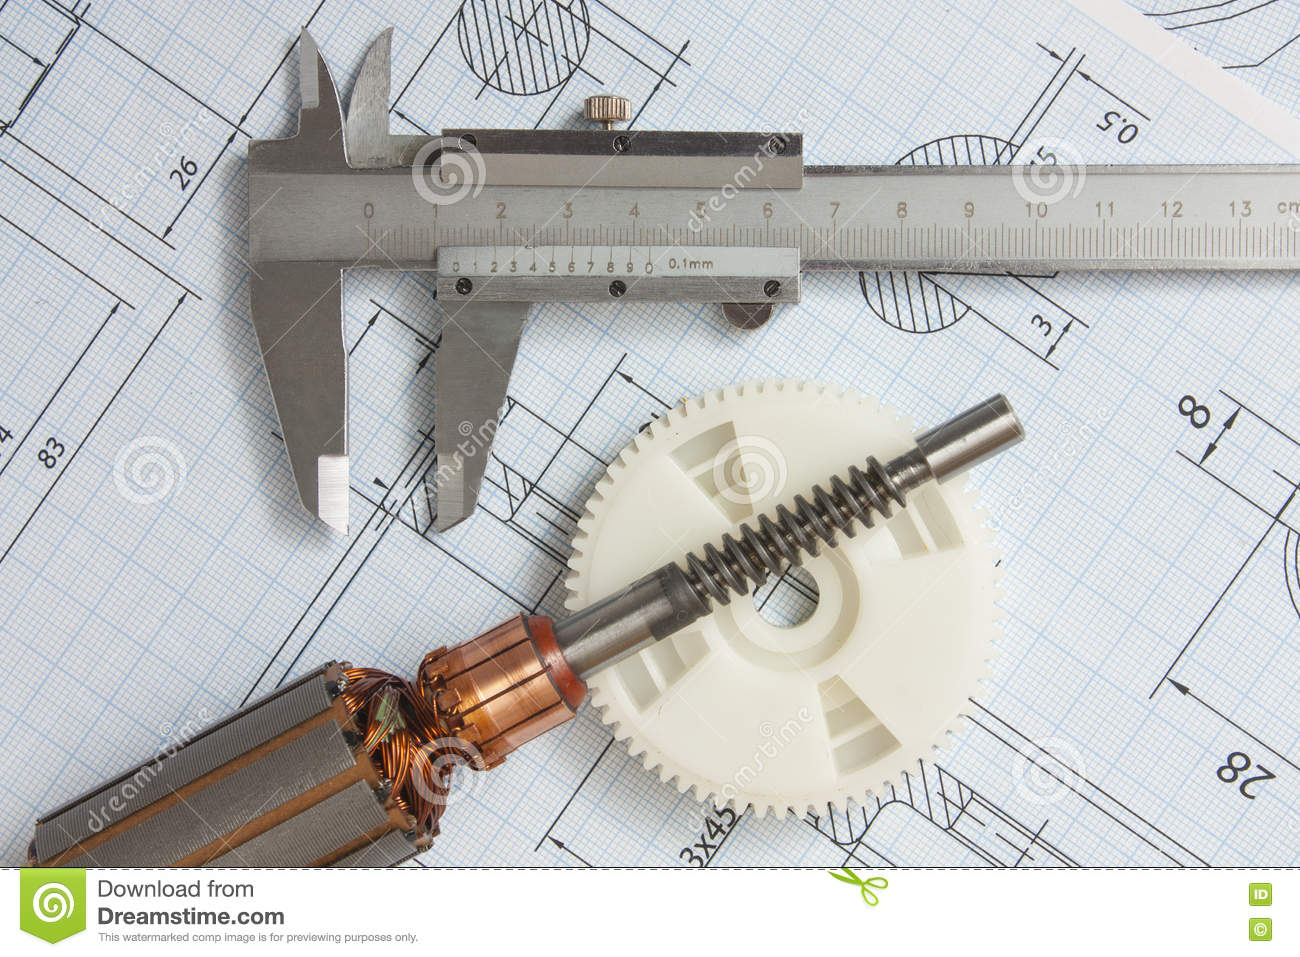 Electrical components and stationery measuring tools